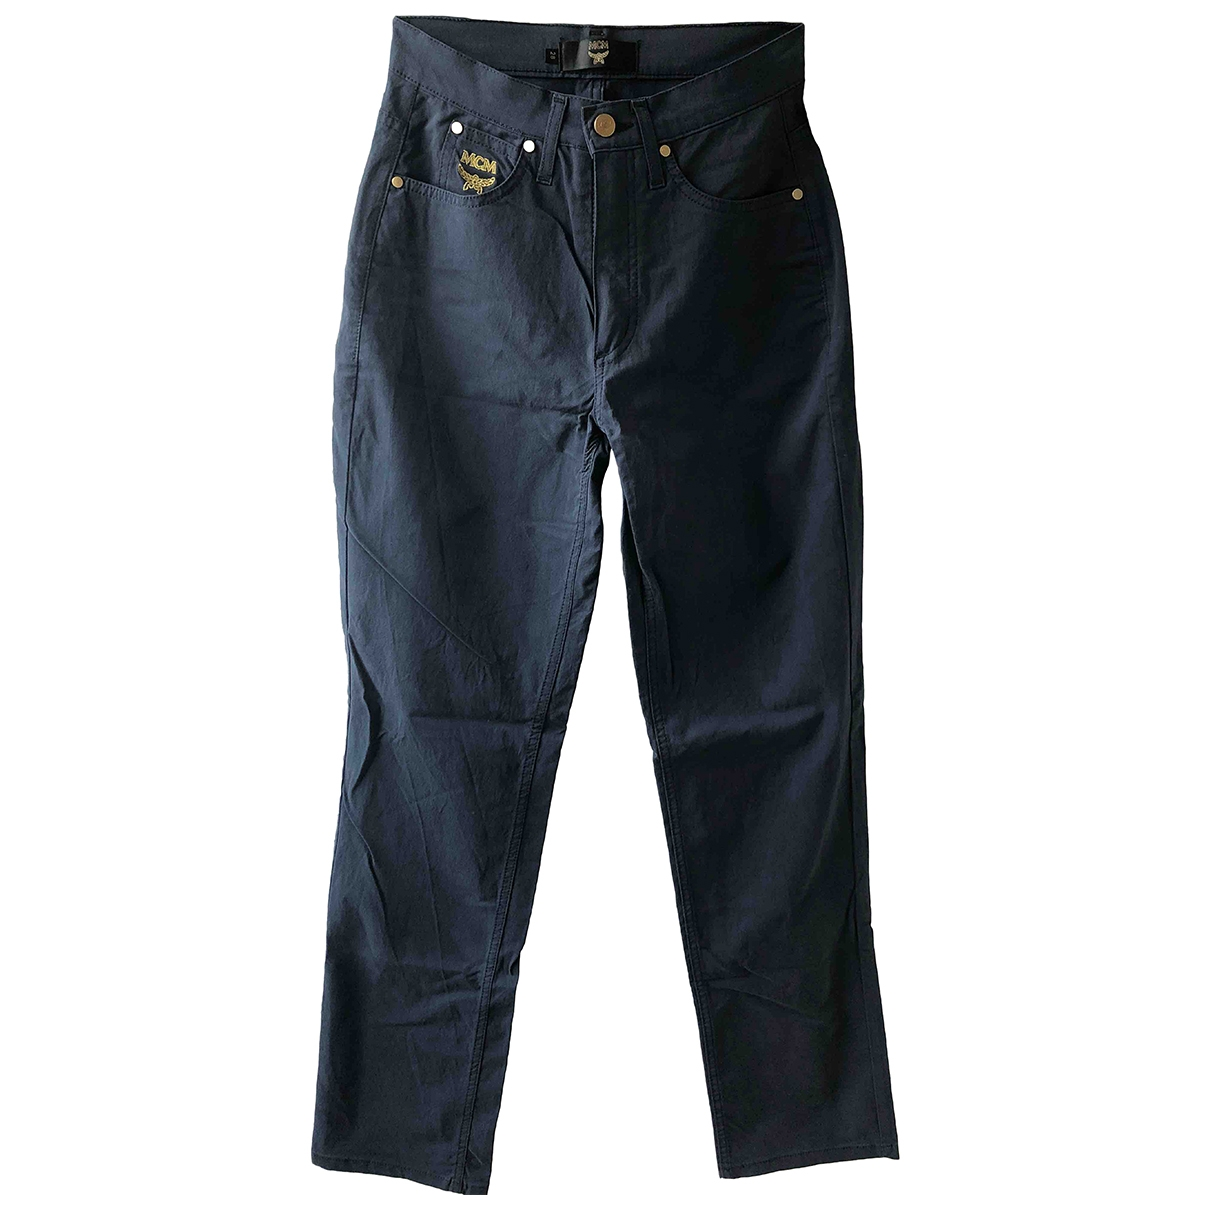 Mcm \N Blue Cotton Trousers for Women S International